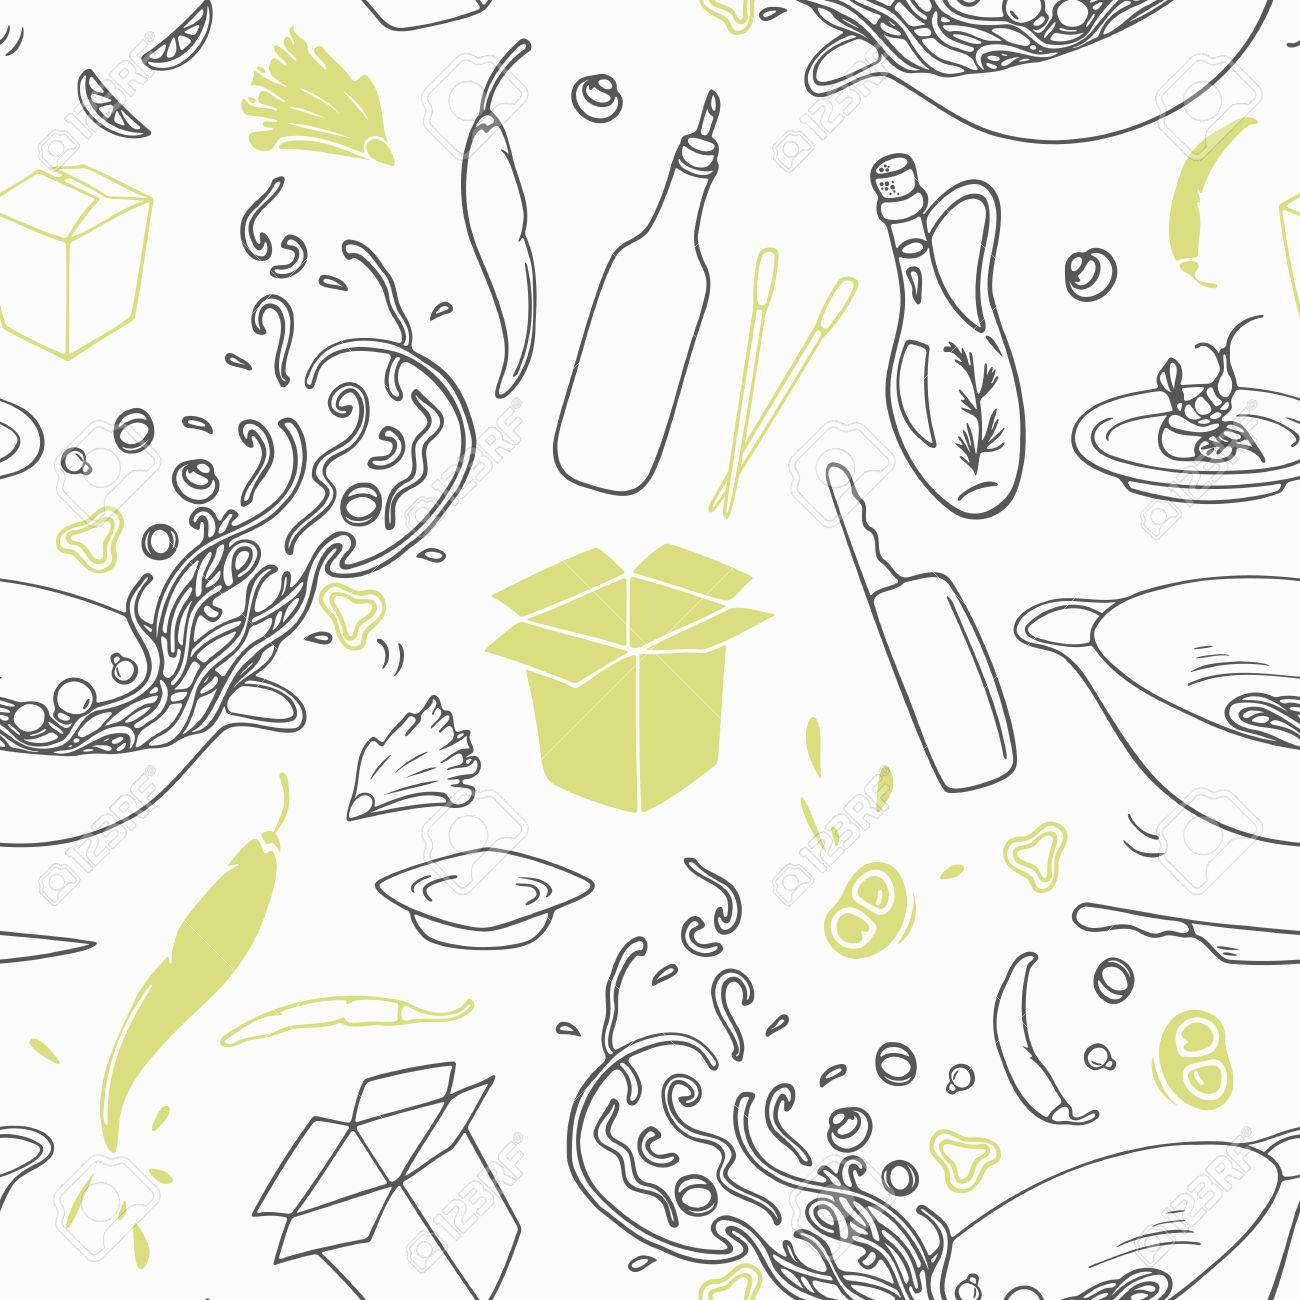 Stylized Seamless Pattern With Hand Drawn Wok Restaurant Elements Hipster Background Doodle Asian Cuisine